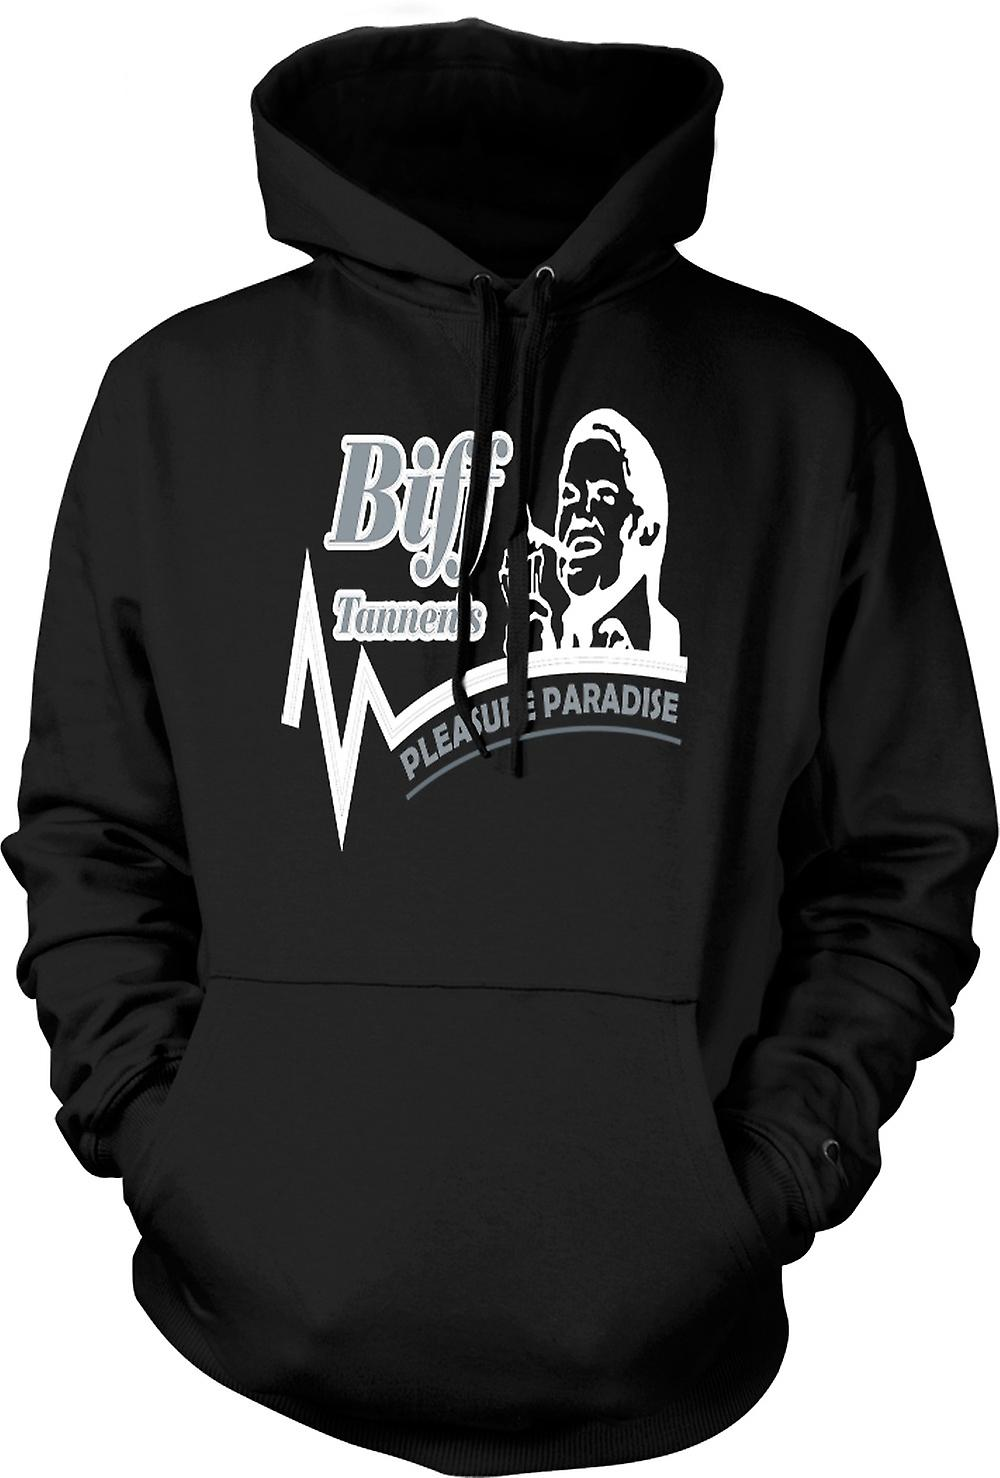 Kids Hoodie - Back To The Future - Biff Tannen